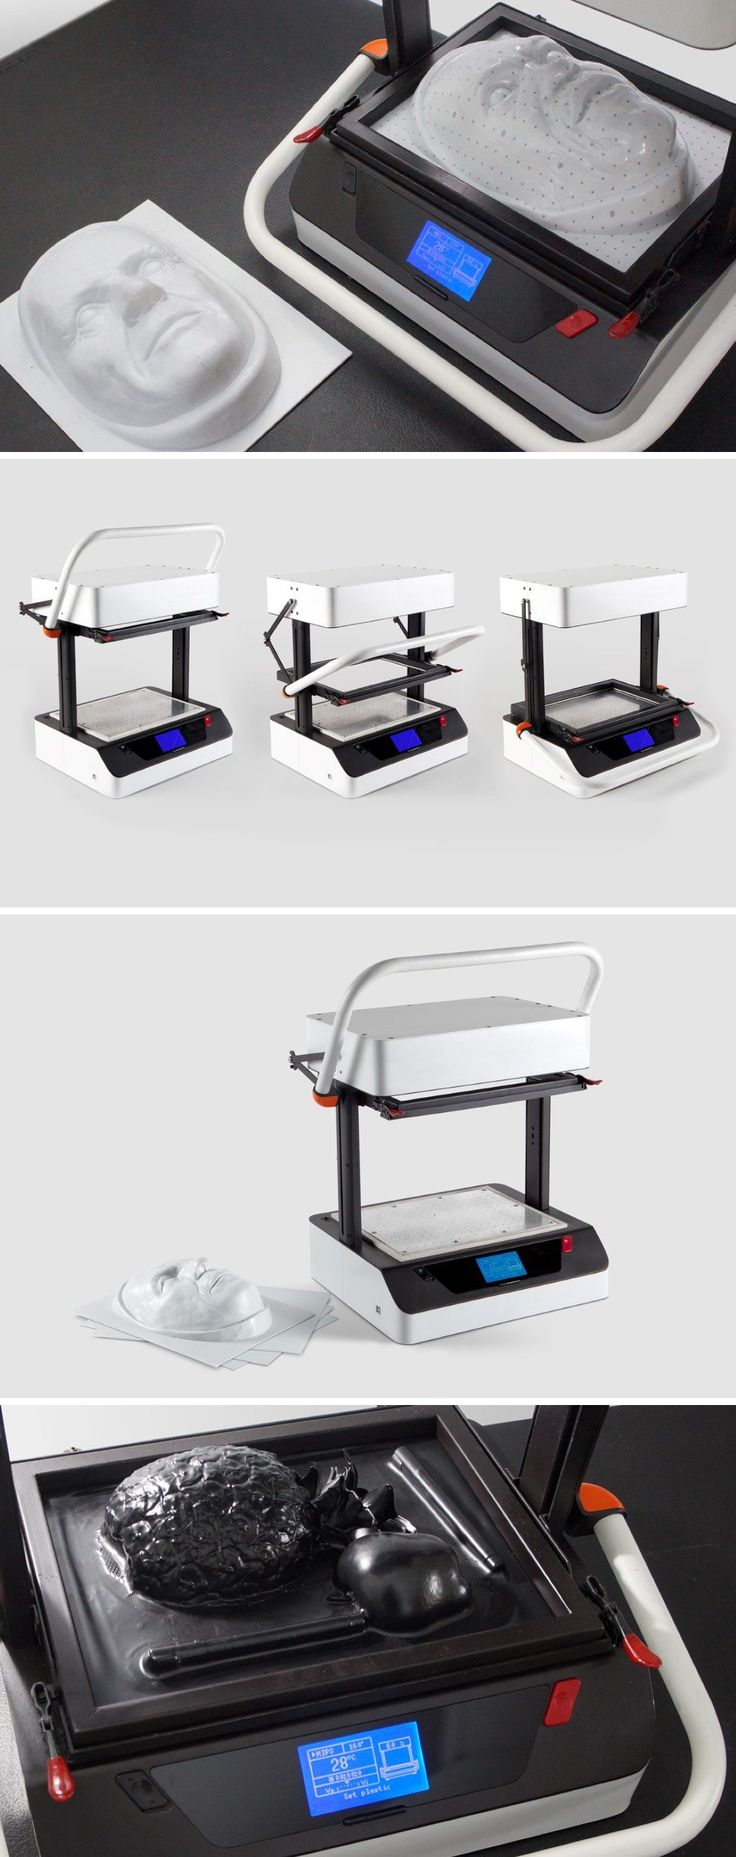 The world's first digital desktop vacuum former has arrived!